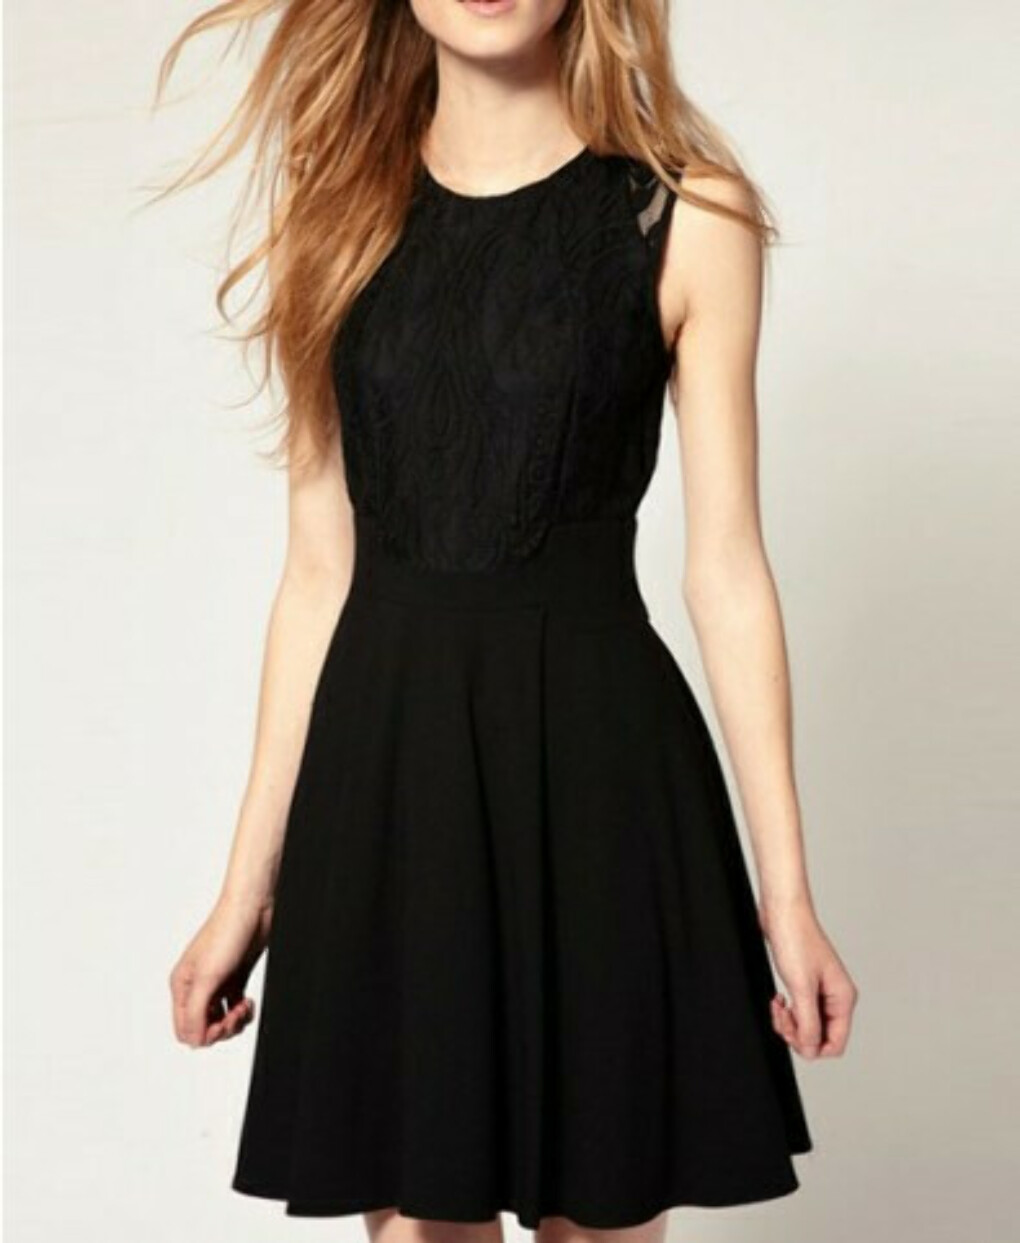 Black Body-Conscious Dress with Lace Insert